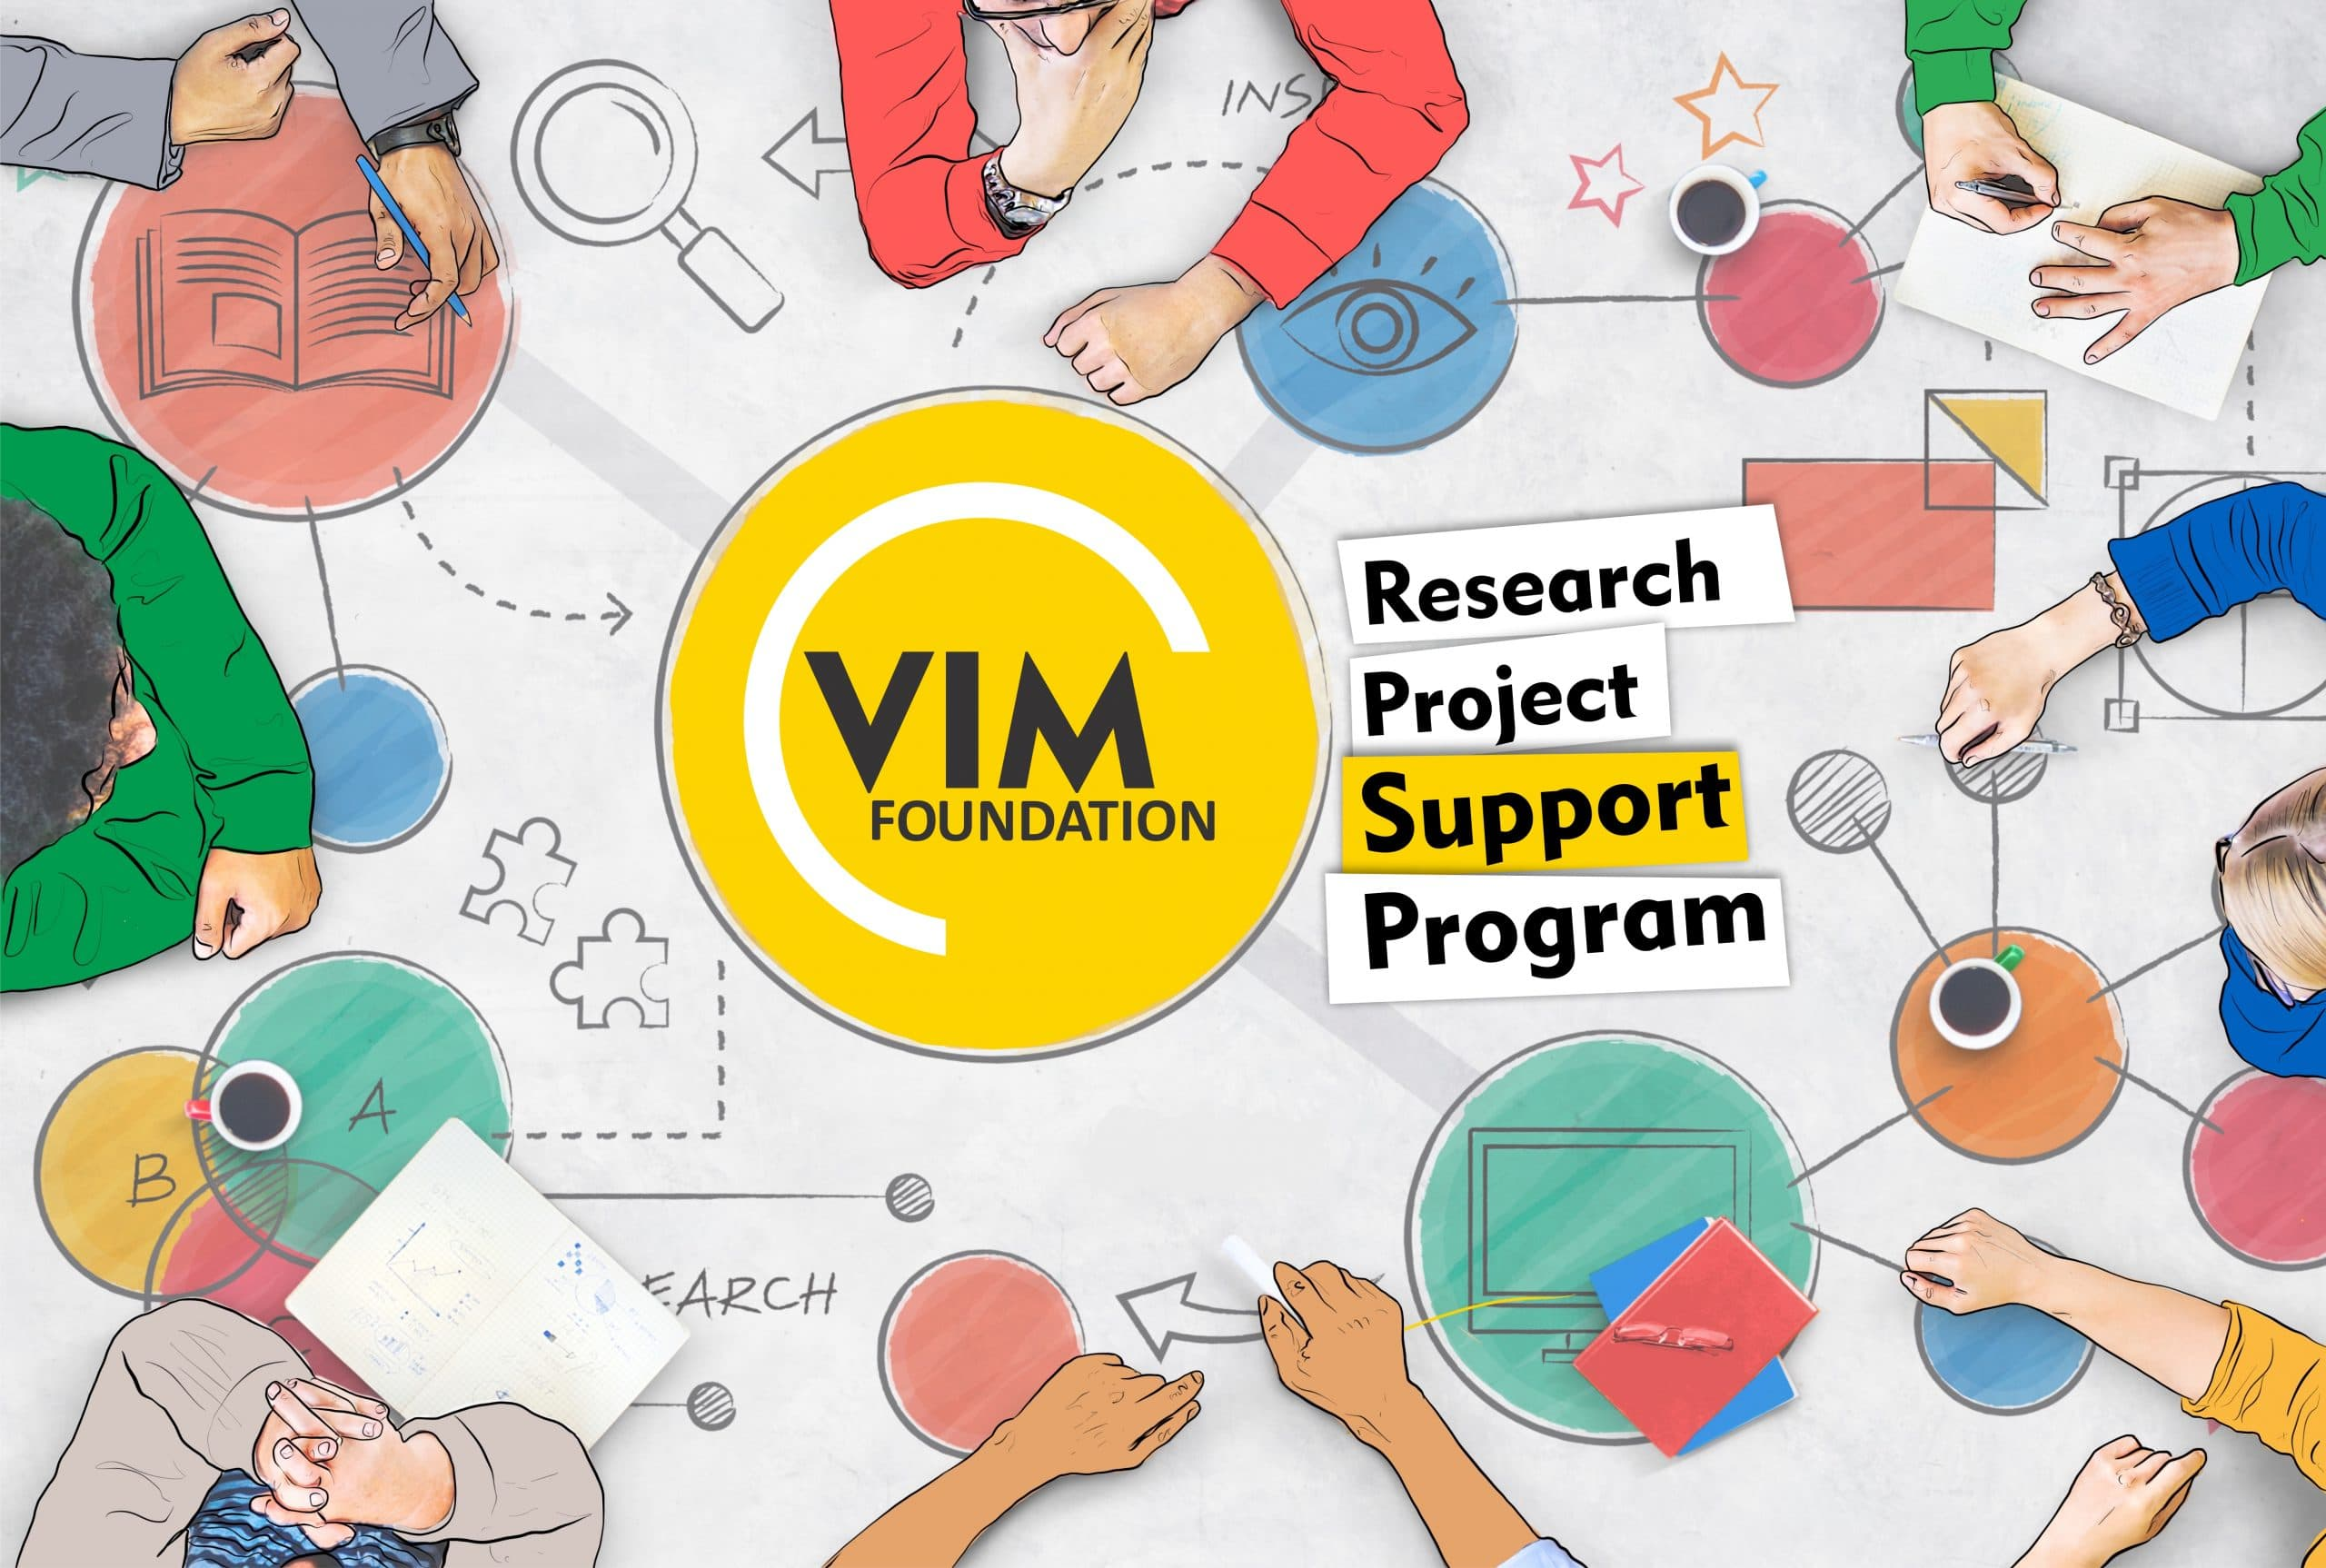 Research Project Support Program